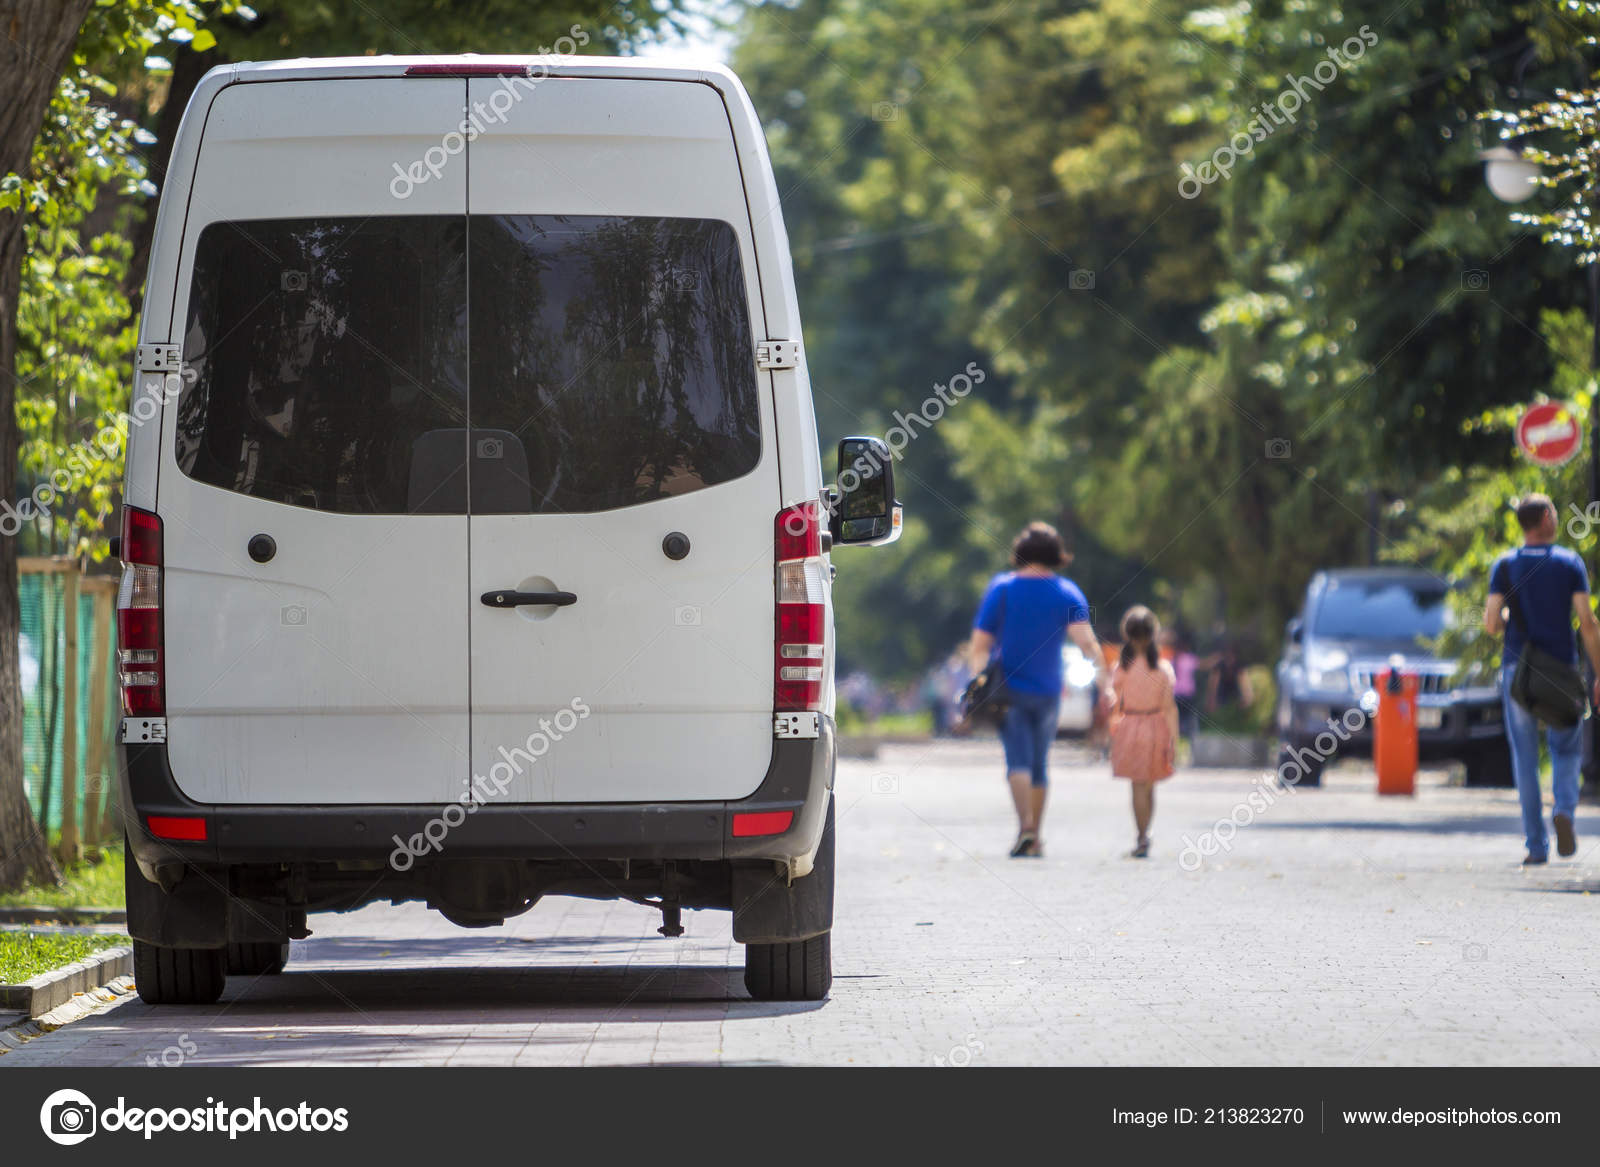 fe282b8667 Back view of white passenger medium size commercial luxury minibus van  parked n shadow of green tree on summer city street with blurred  silhouettes of ...